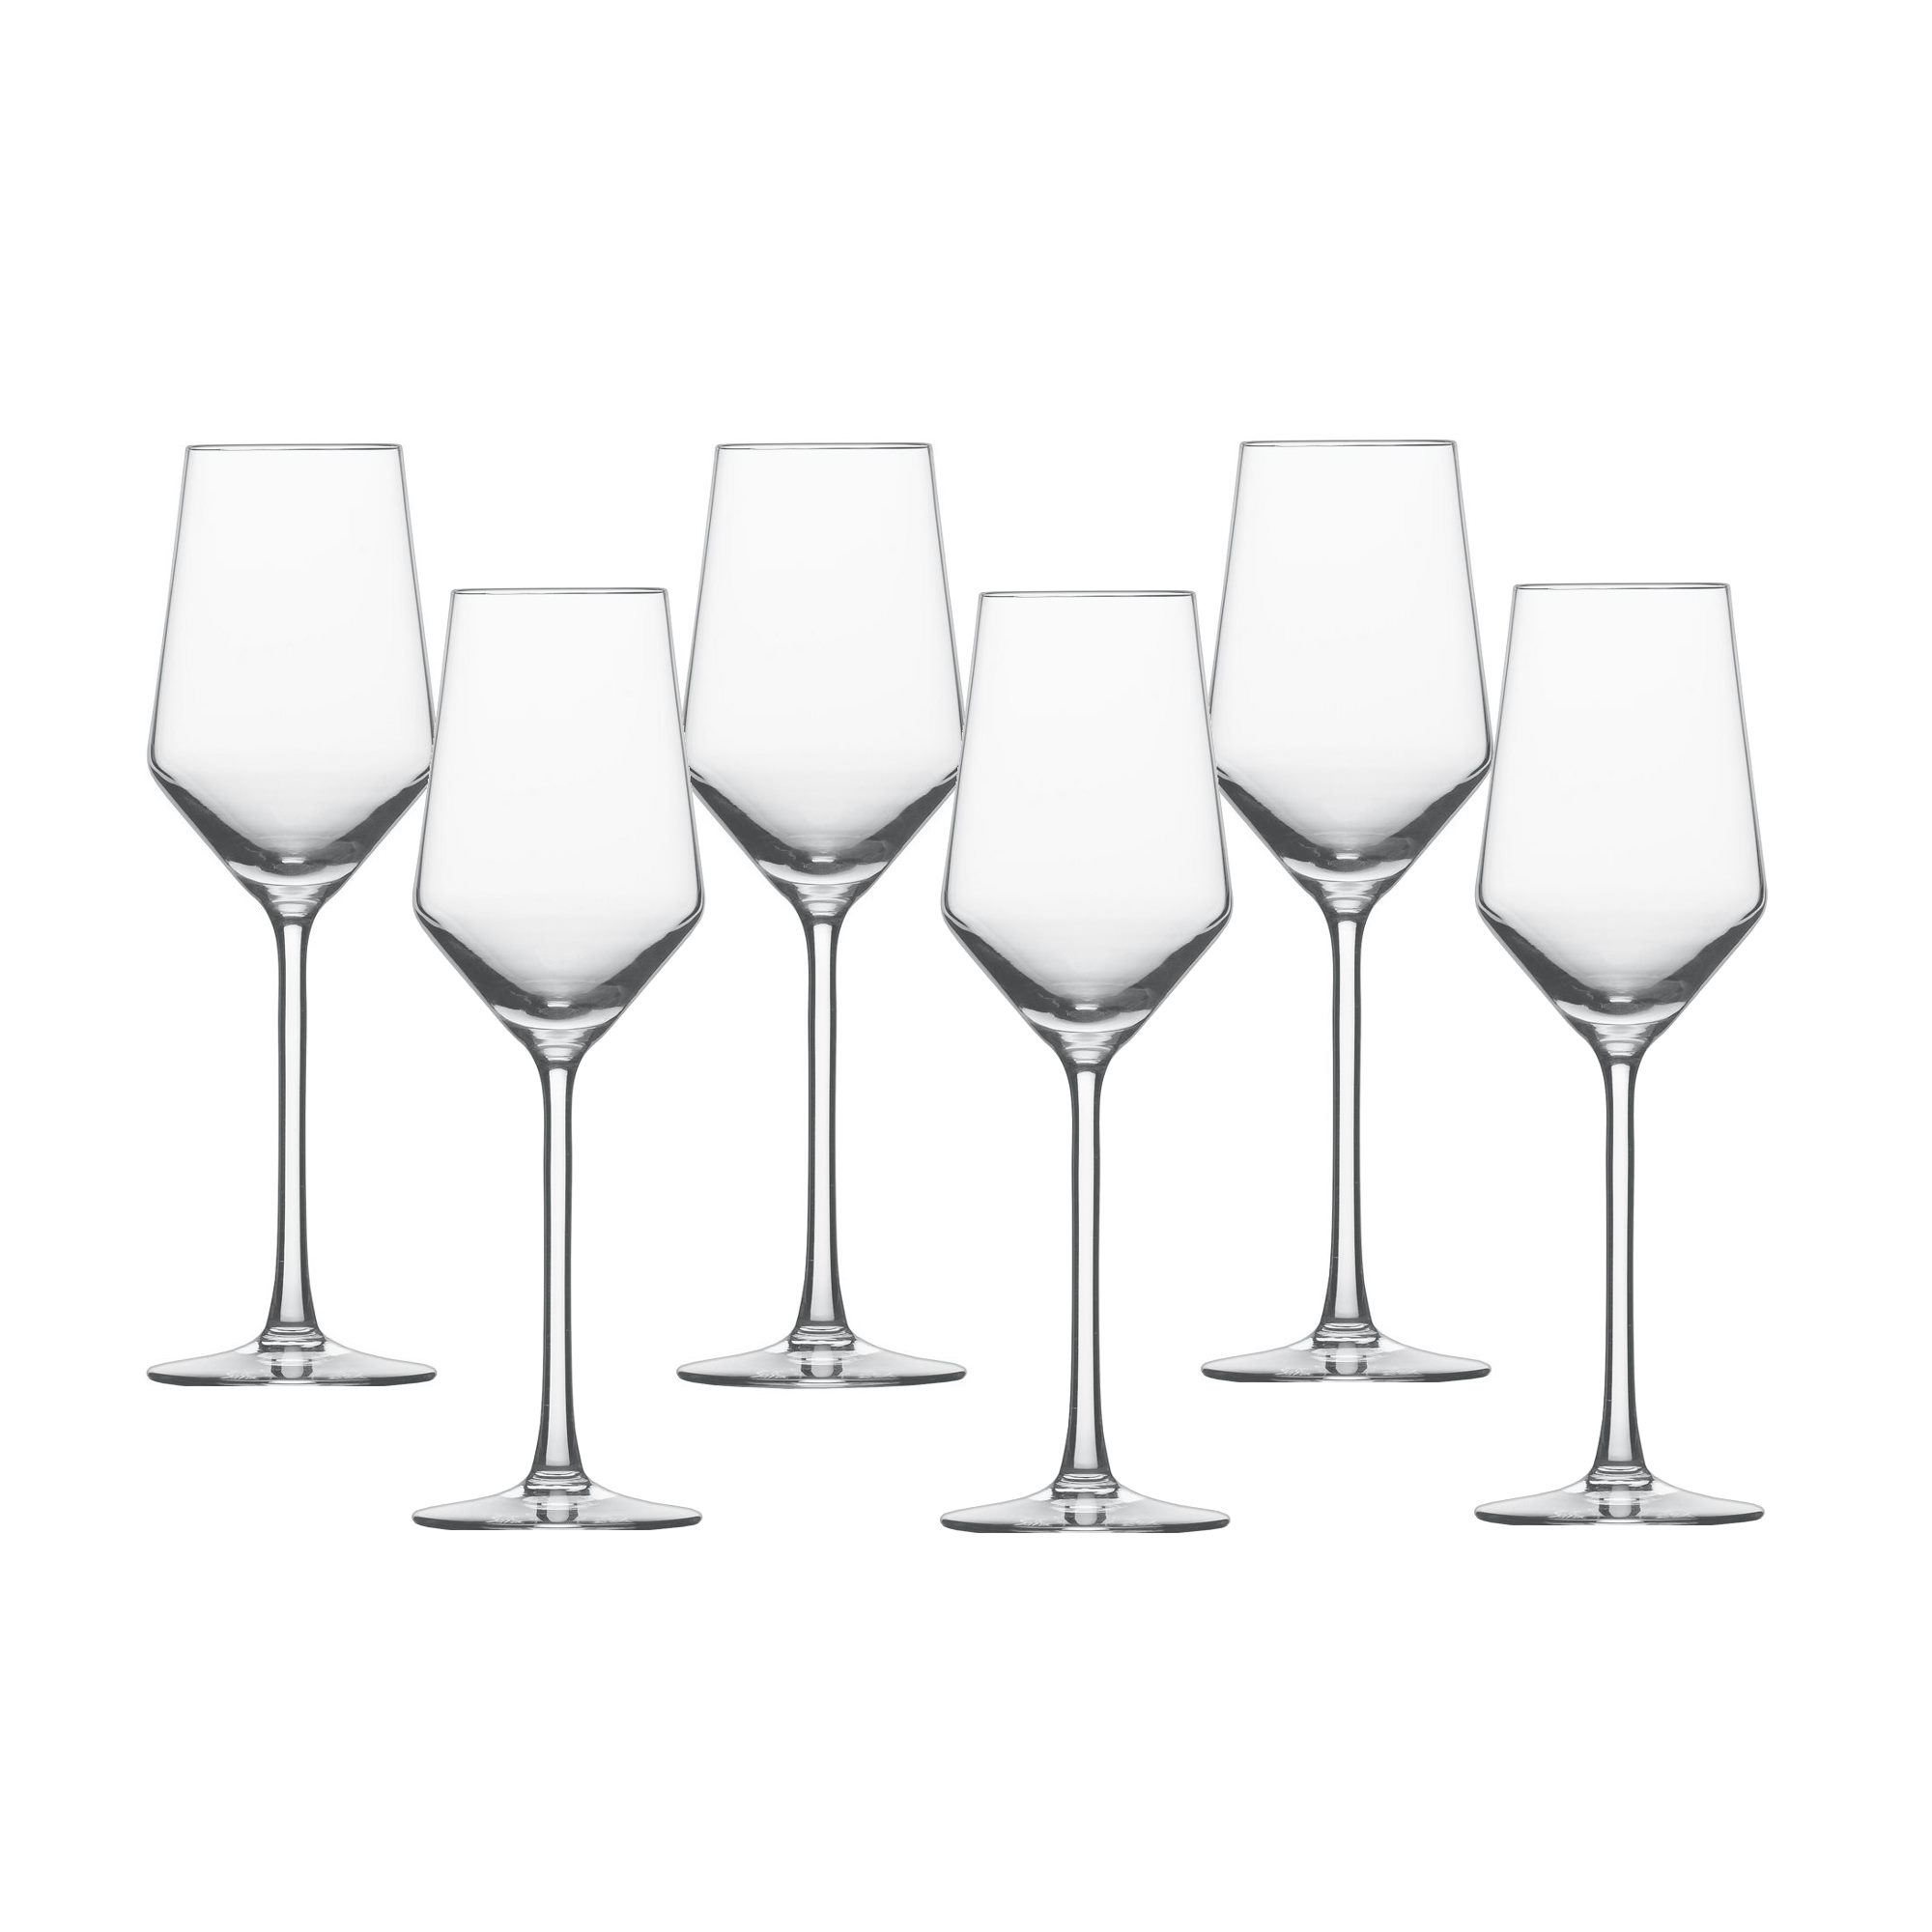 Schott Zwiesel Wine Glasses | Commercial Tableware | Fortessa Com